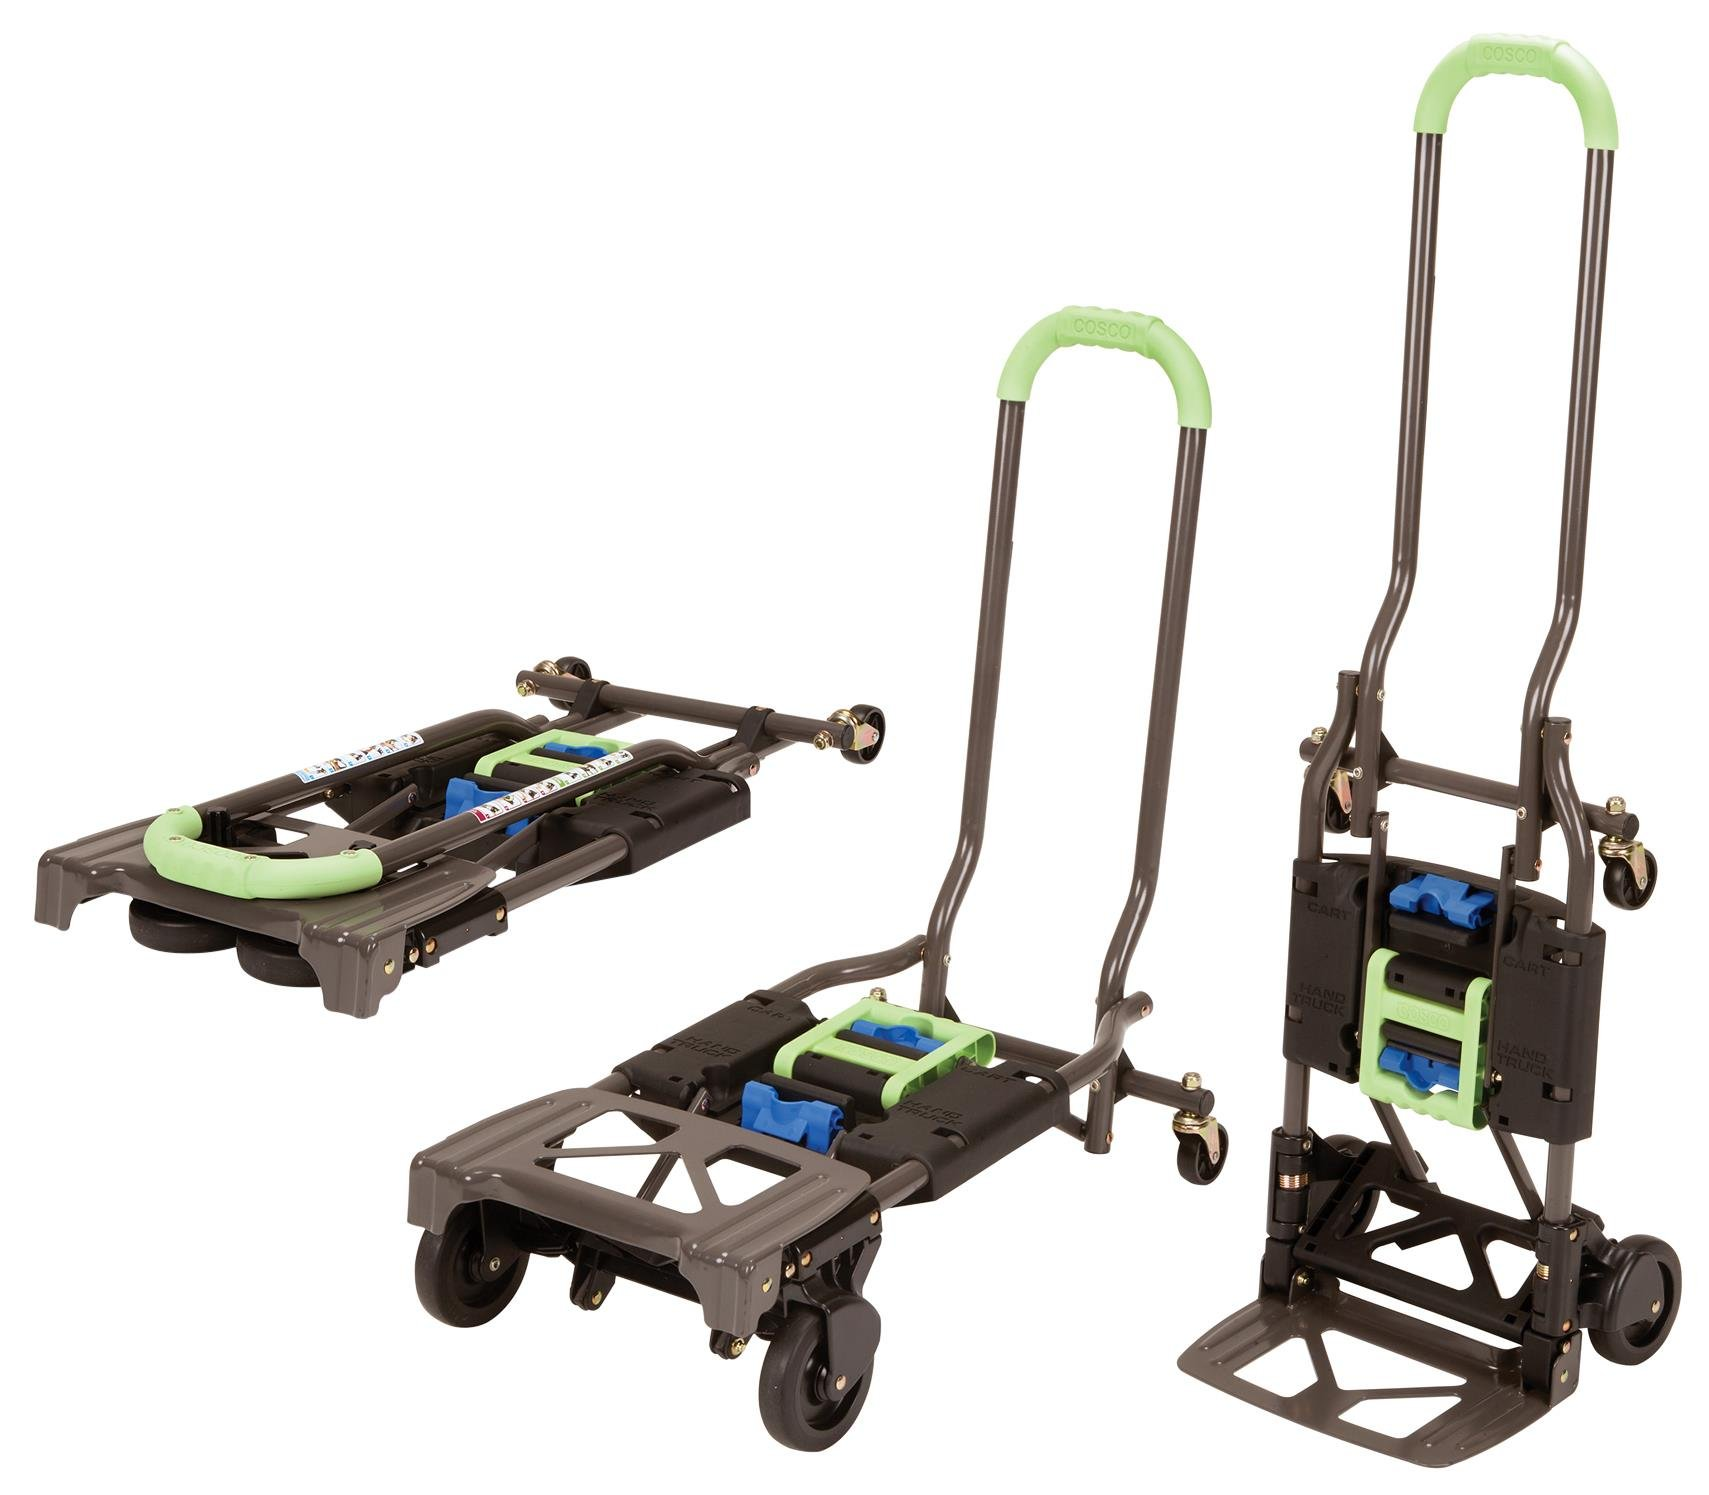 Cosco Shifter 300-Pound Capacity Multi-Position Heavy Duty Folding Hand Truck and Dolly, Green by Cosco